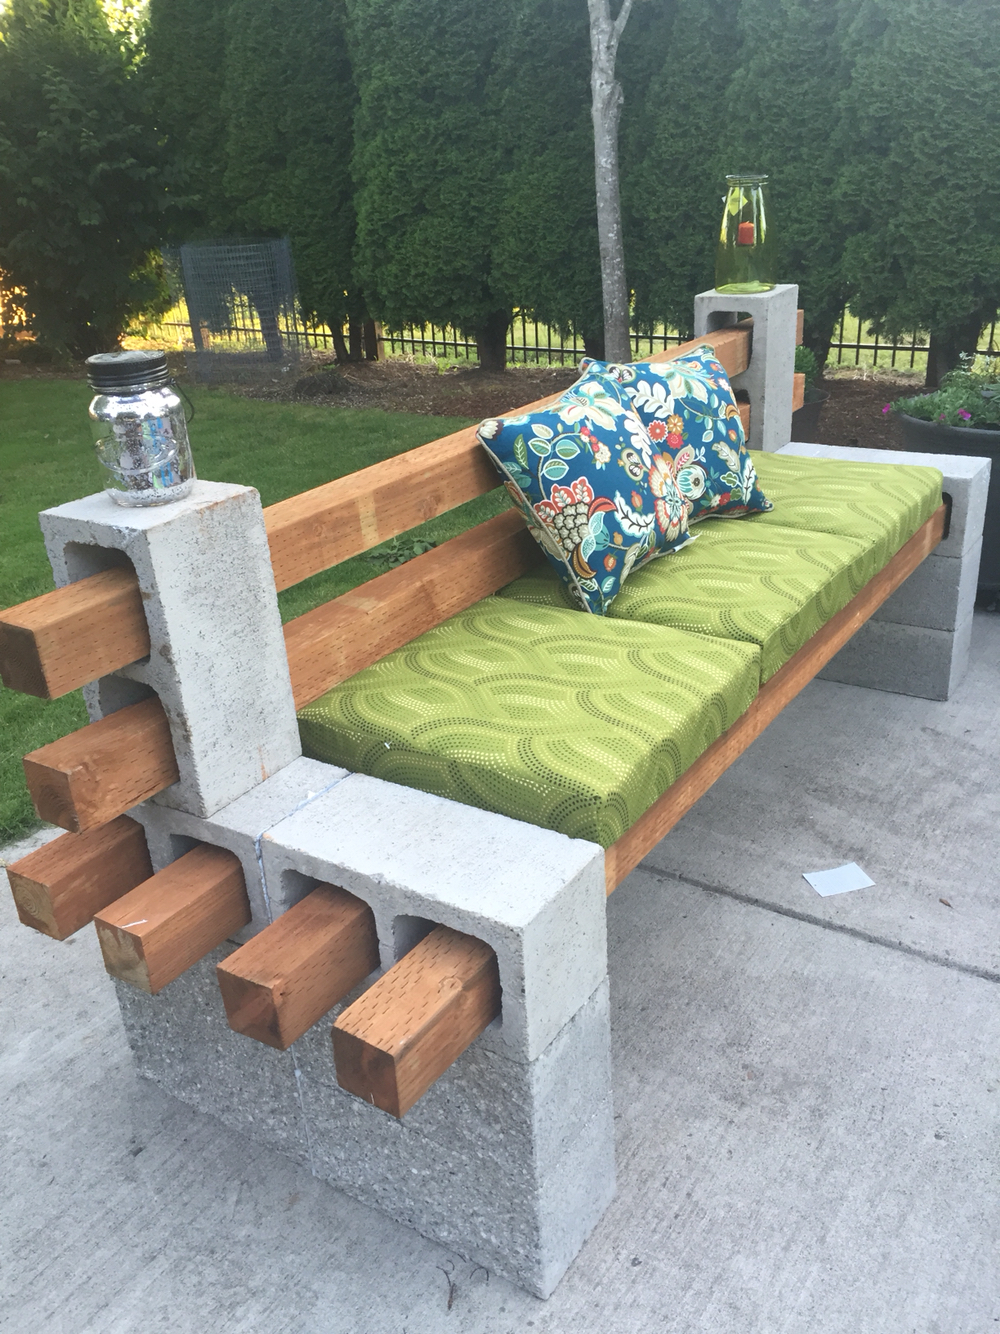 13 DIY Patio Furniture Ideas that Are Simple and Cheap ... on Diy Garden Patio Ideas id=38083